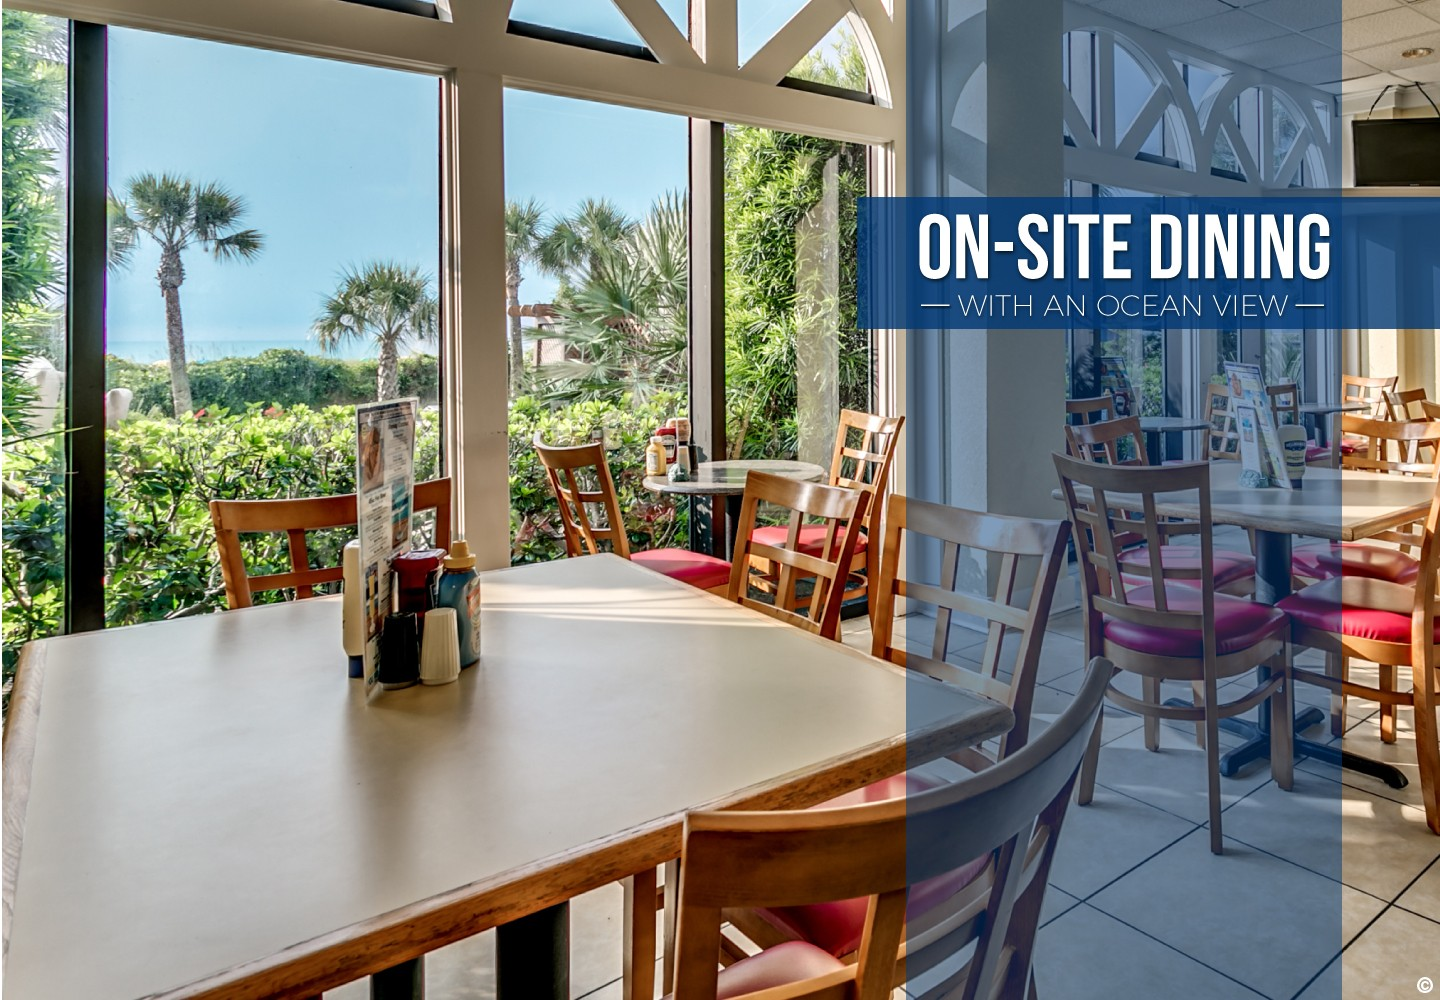 on-site dining with an ocean view